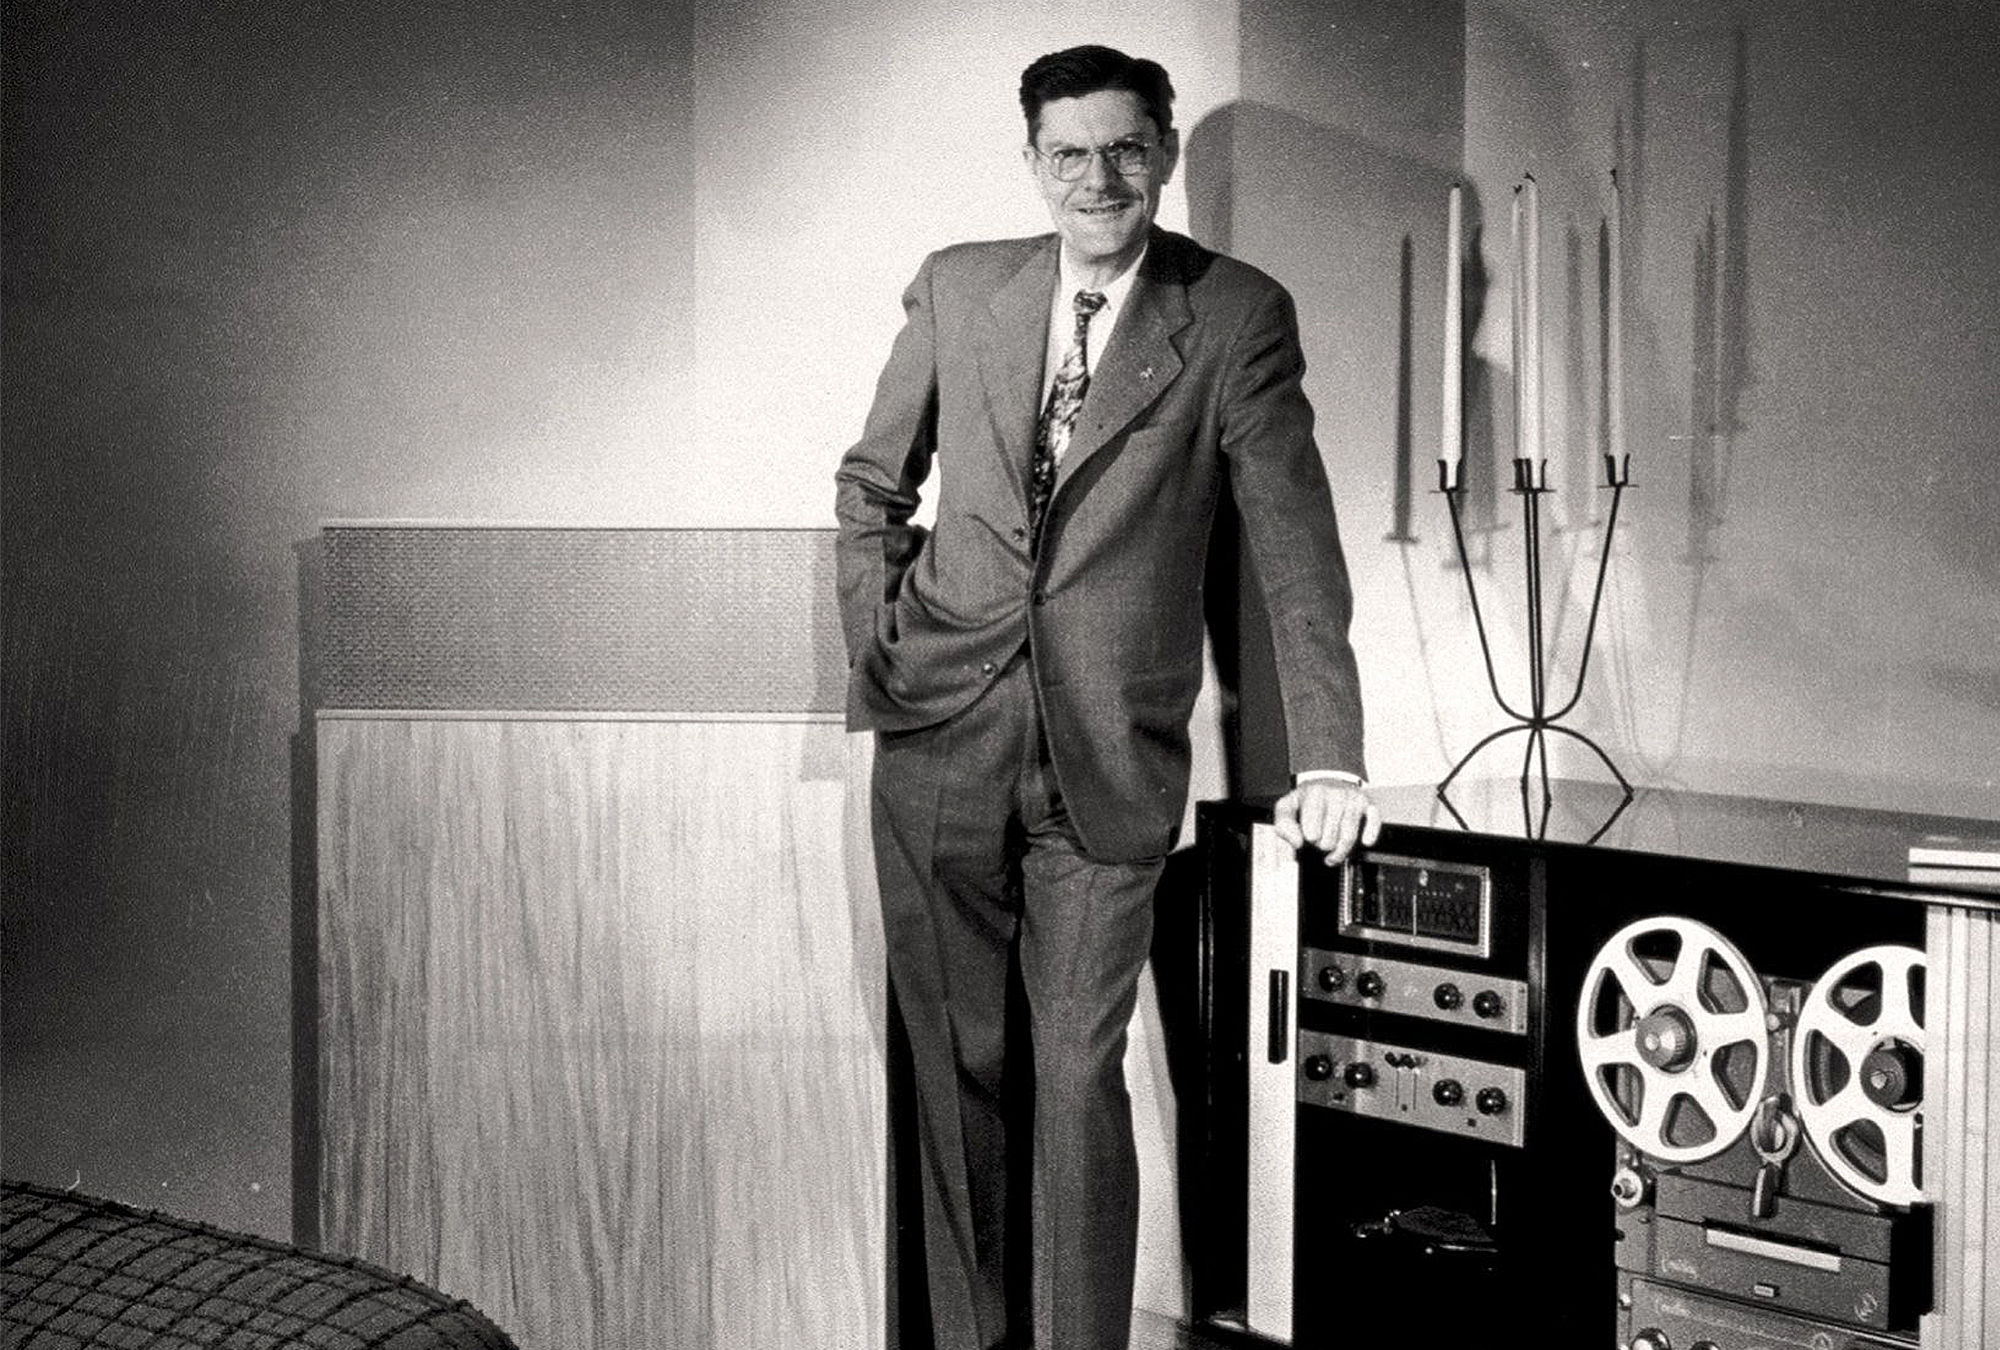 Paul W. Klipsch posing with an early version of the Klischorn